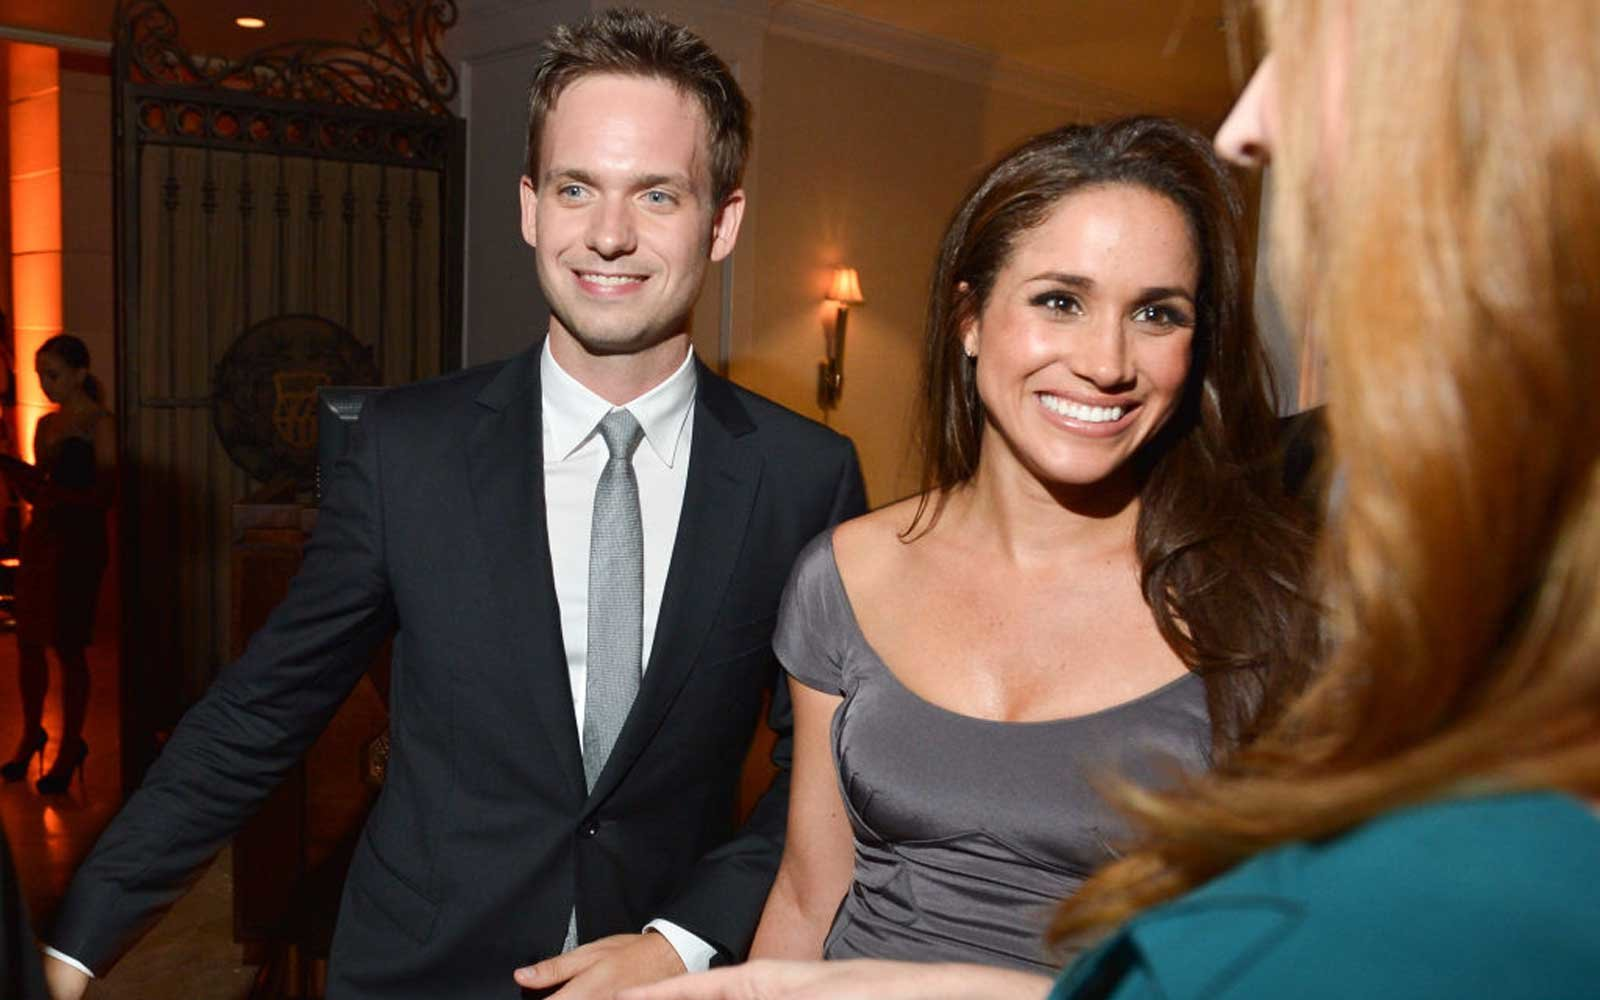 Patrick J. Adams and Meghan Markle  attend the InStyle and Hollywood Foreign Press Association's Toronto International Film Festival Party at Windsor Arms Hotel on September 11, 2012 in Toronto, Canada.